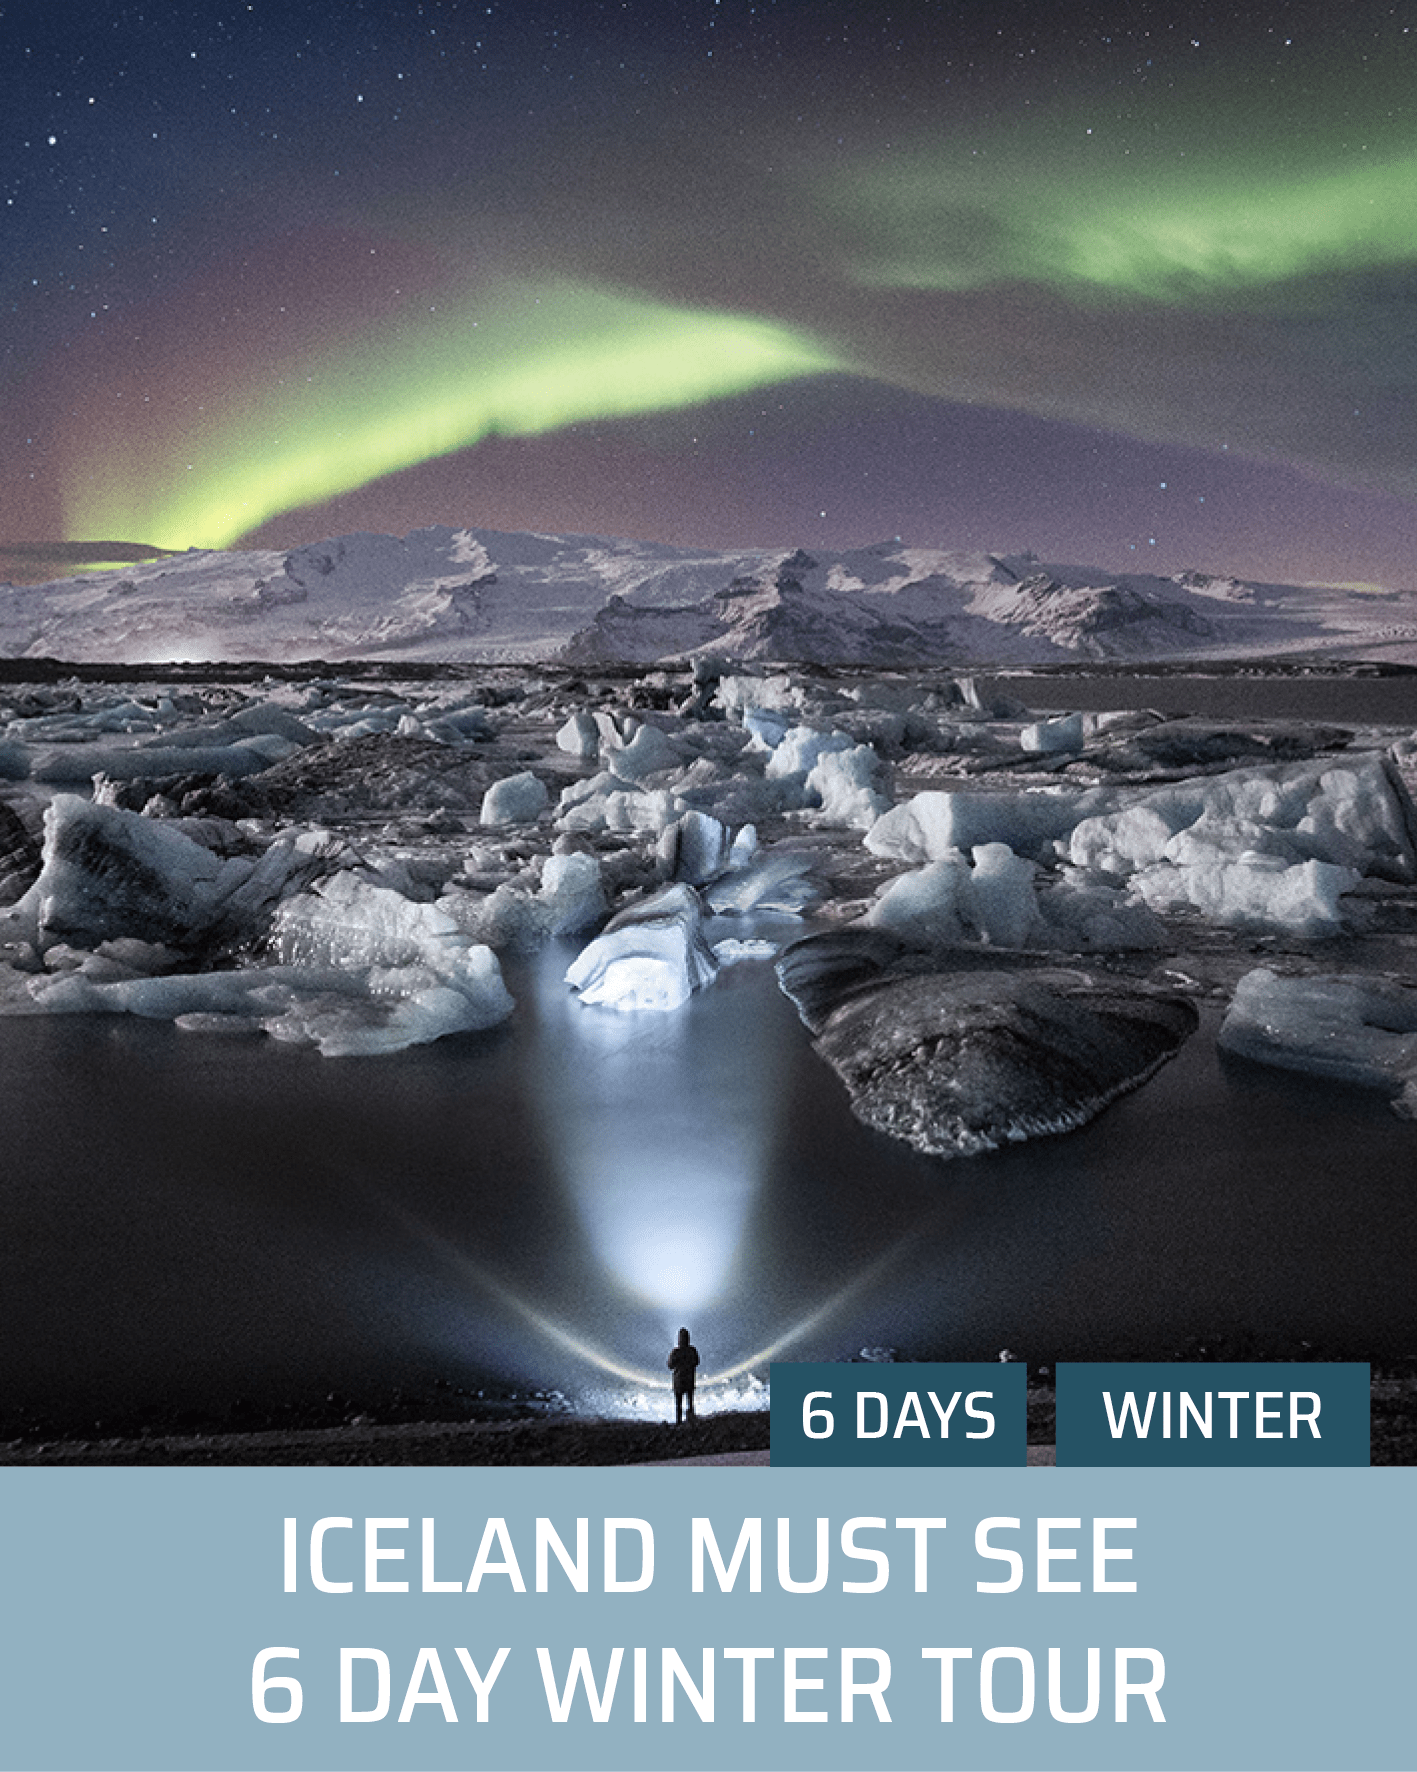 Iceland Must See 6 Day Winter Tour. Hidden Iceland (Image Hover)